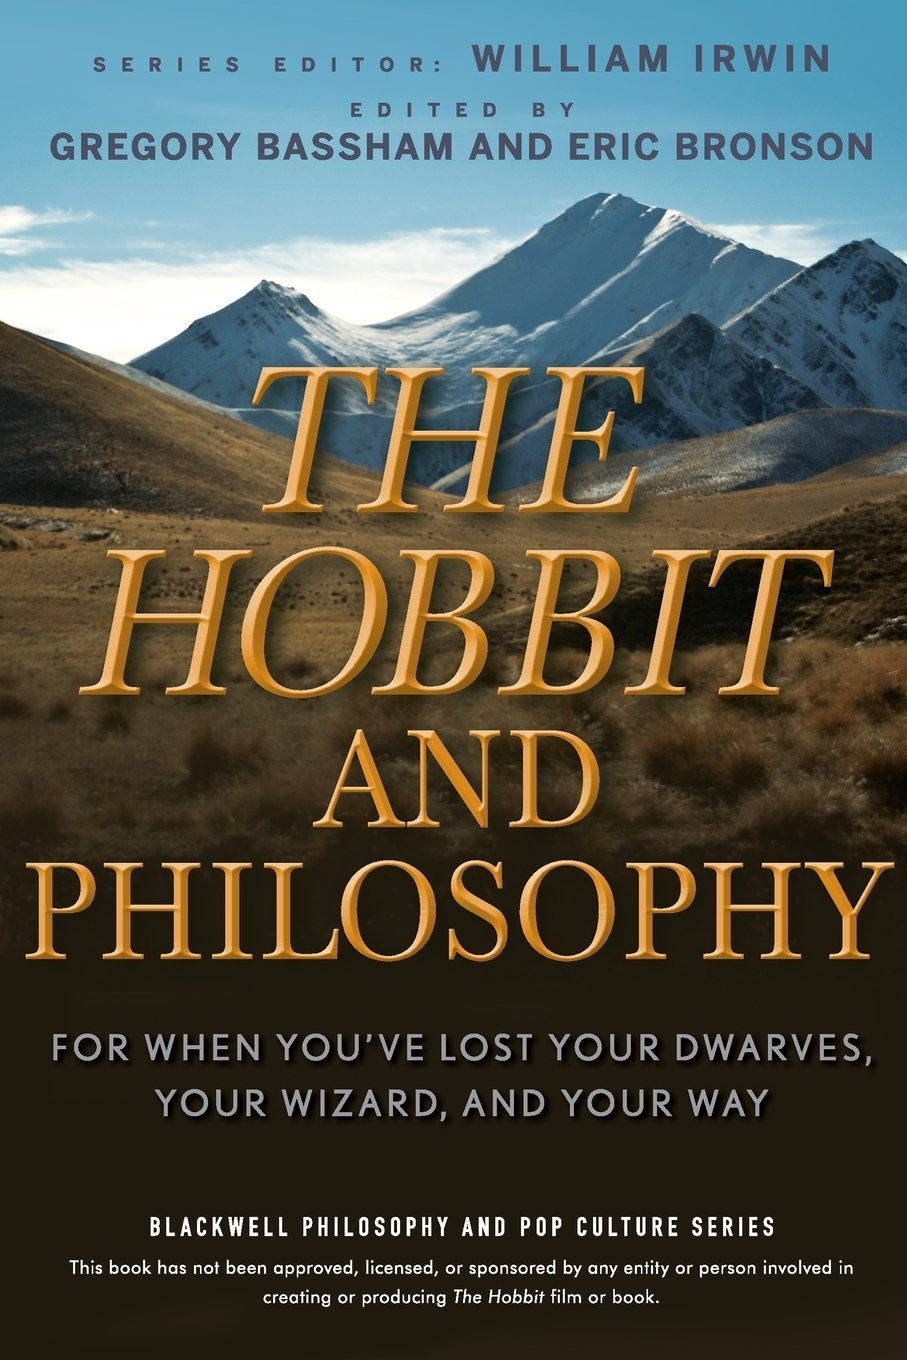 com the hobbit and philosophy for when you ve lost your com the hobbit and philosophy for when you ve lost your dwarves your wizard and your way 9780470405147 gregory bassham eric bronson